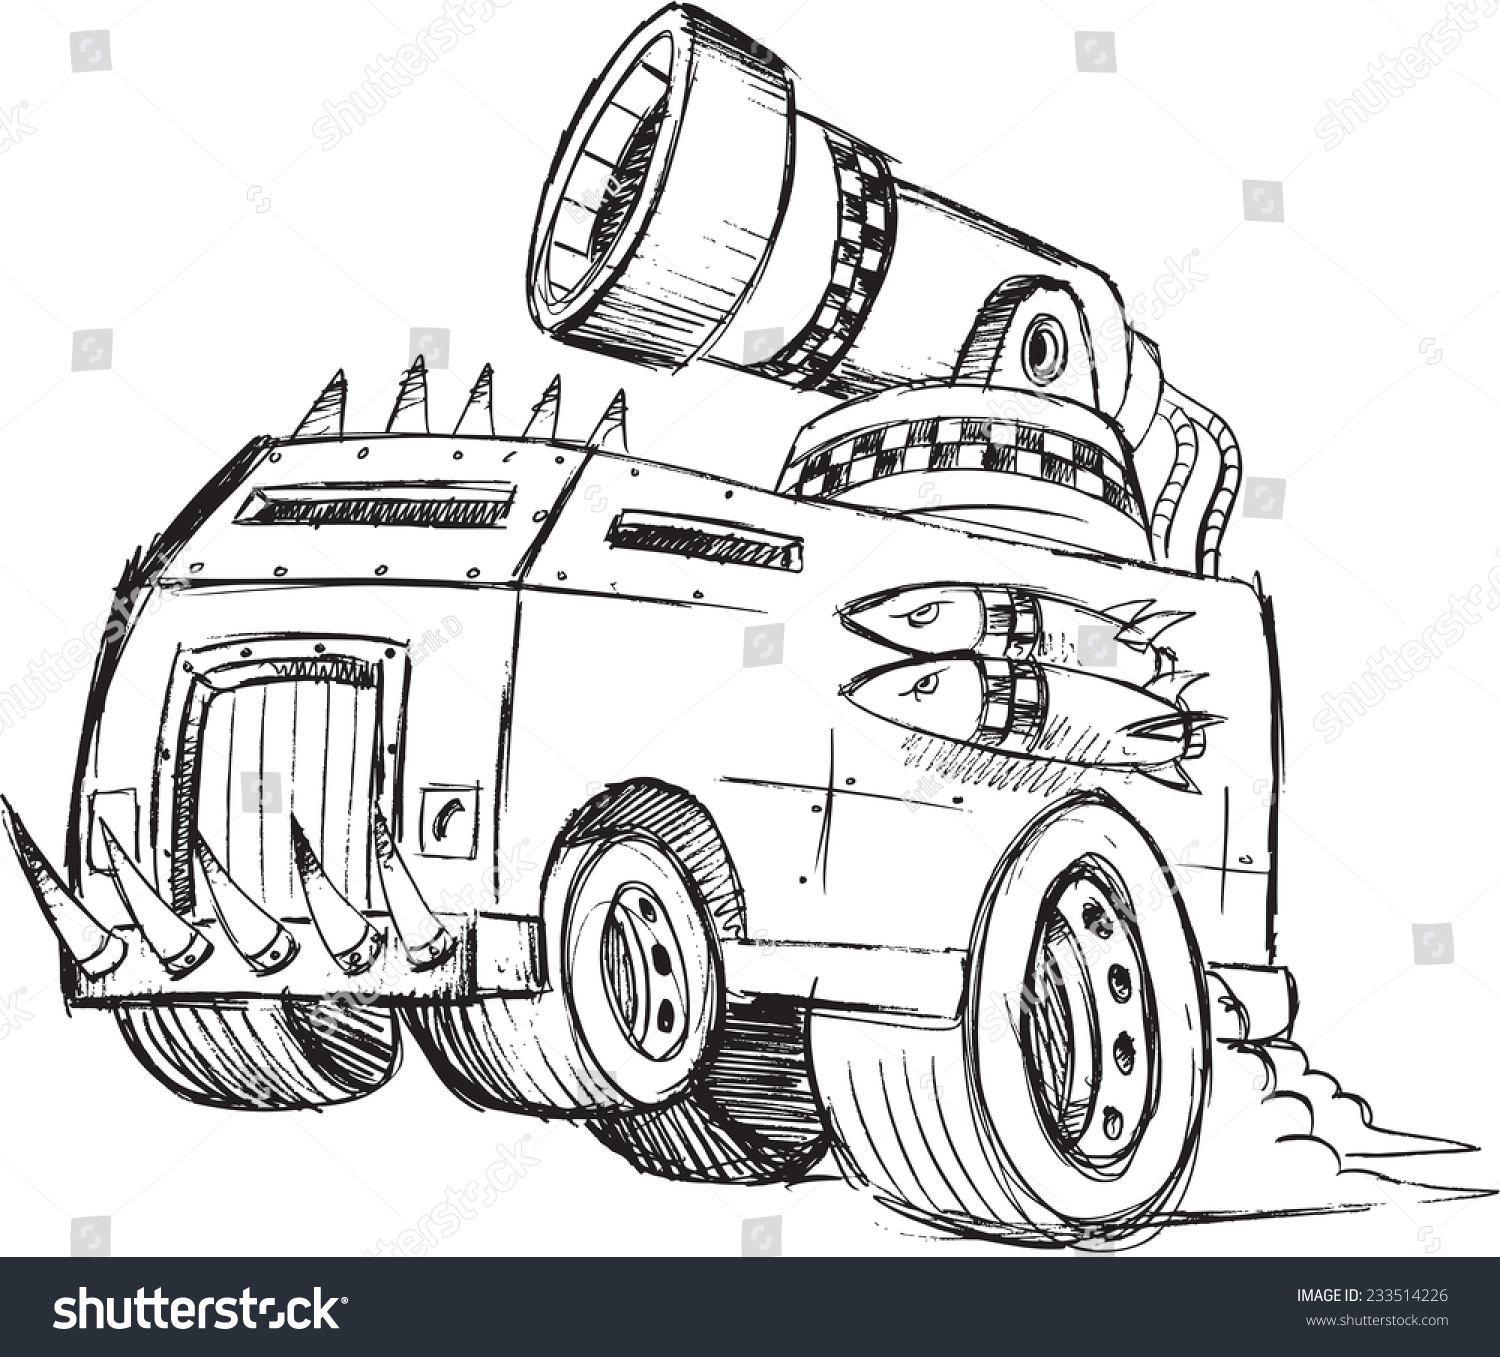 Armored Truck Vehicle Sketch Vector Illustration Stock Vector ...